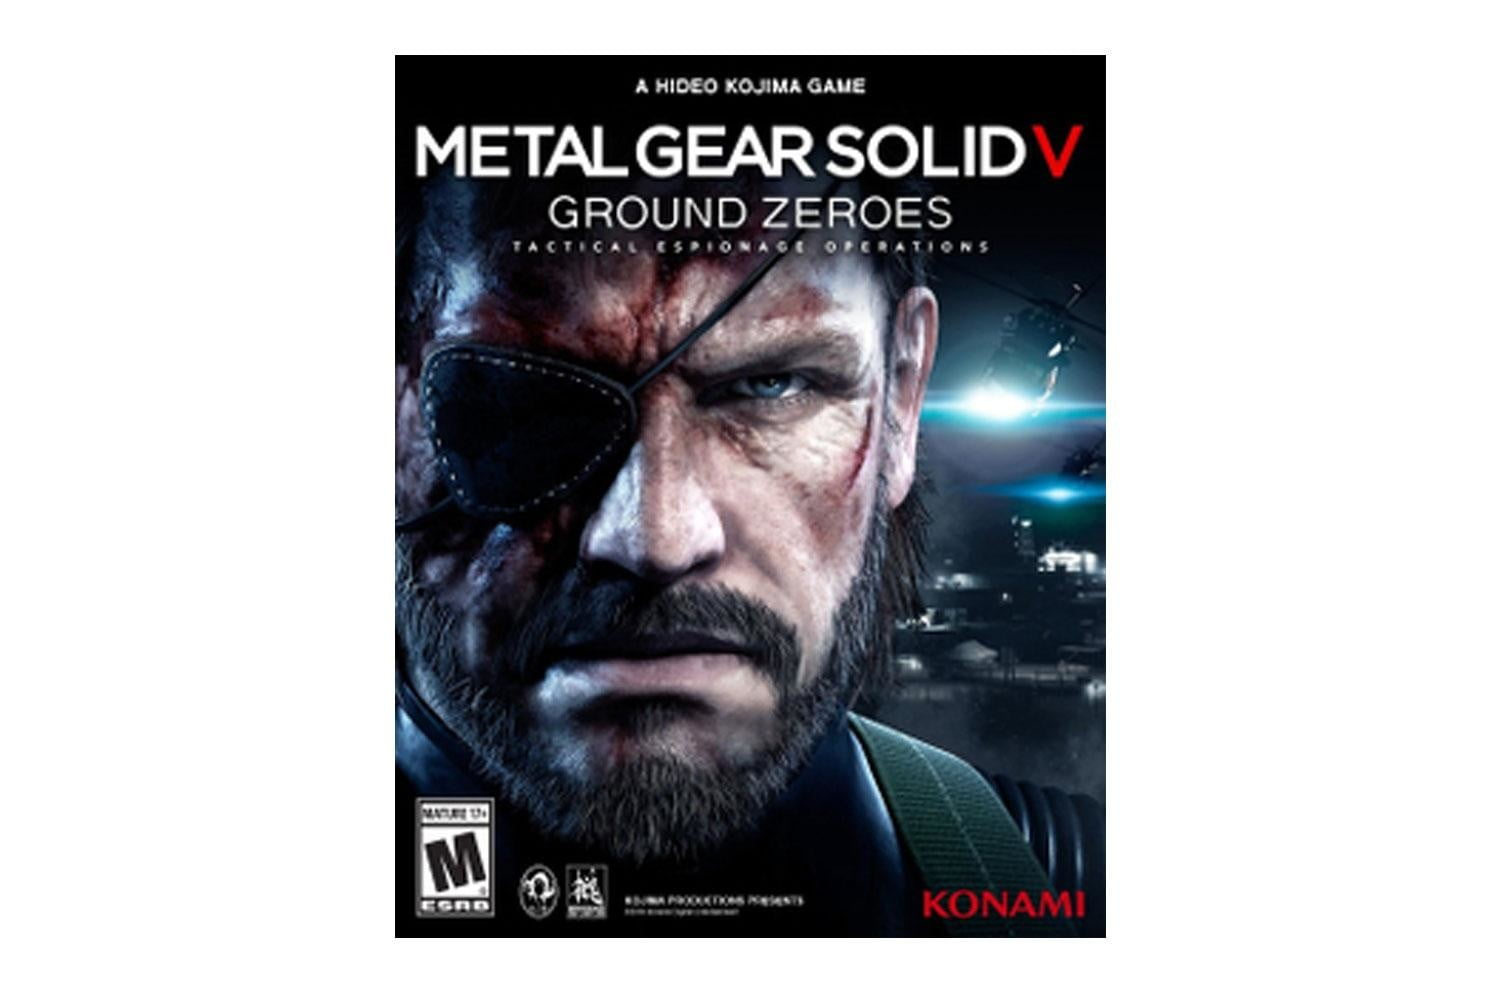 Metal-Gear-Solid-V-Ground-Zeroes-cover-art